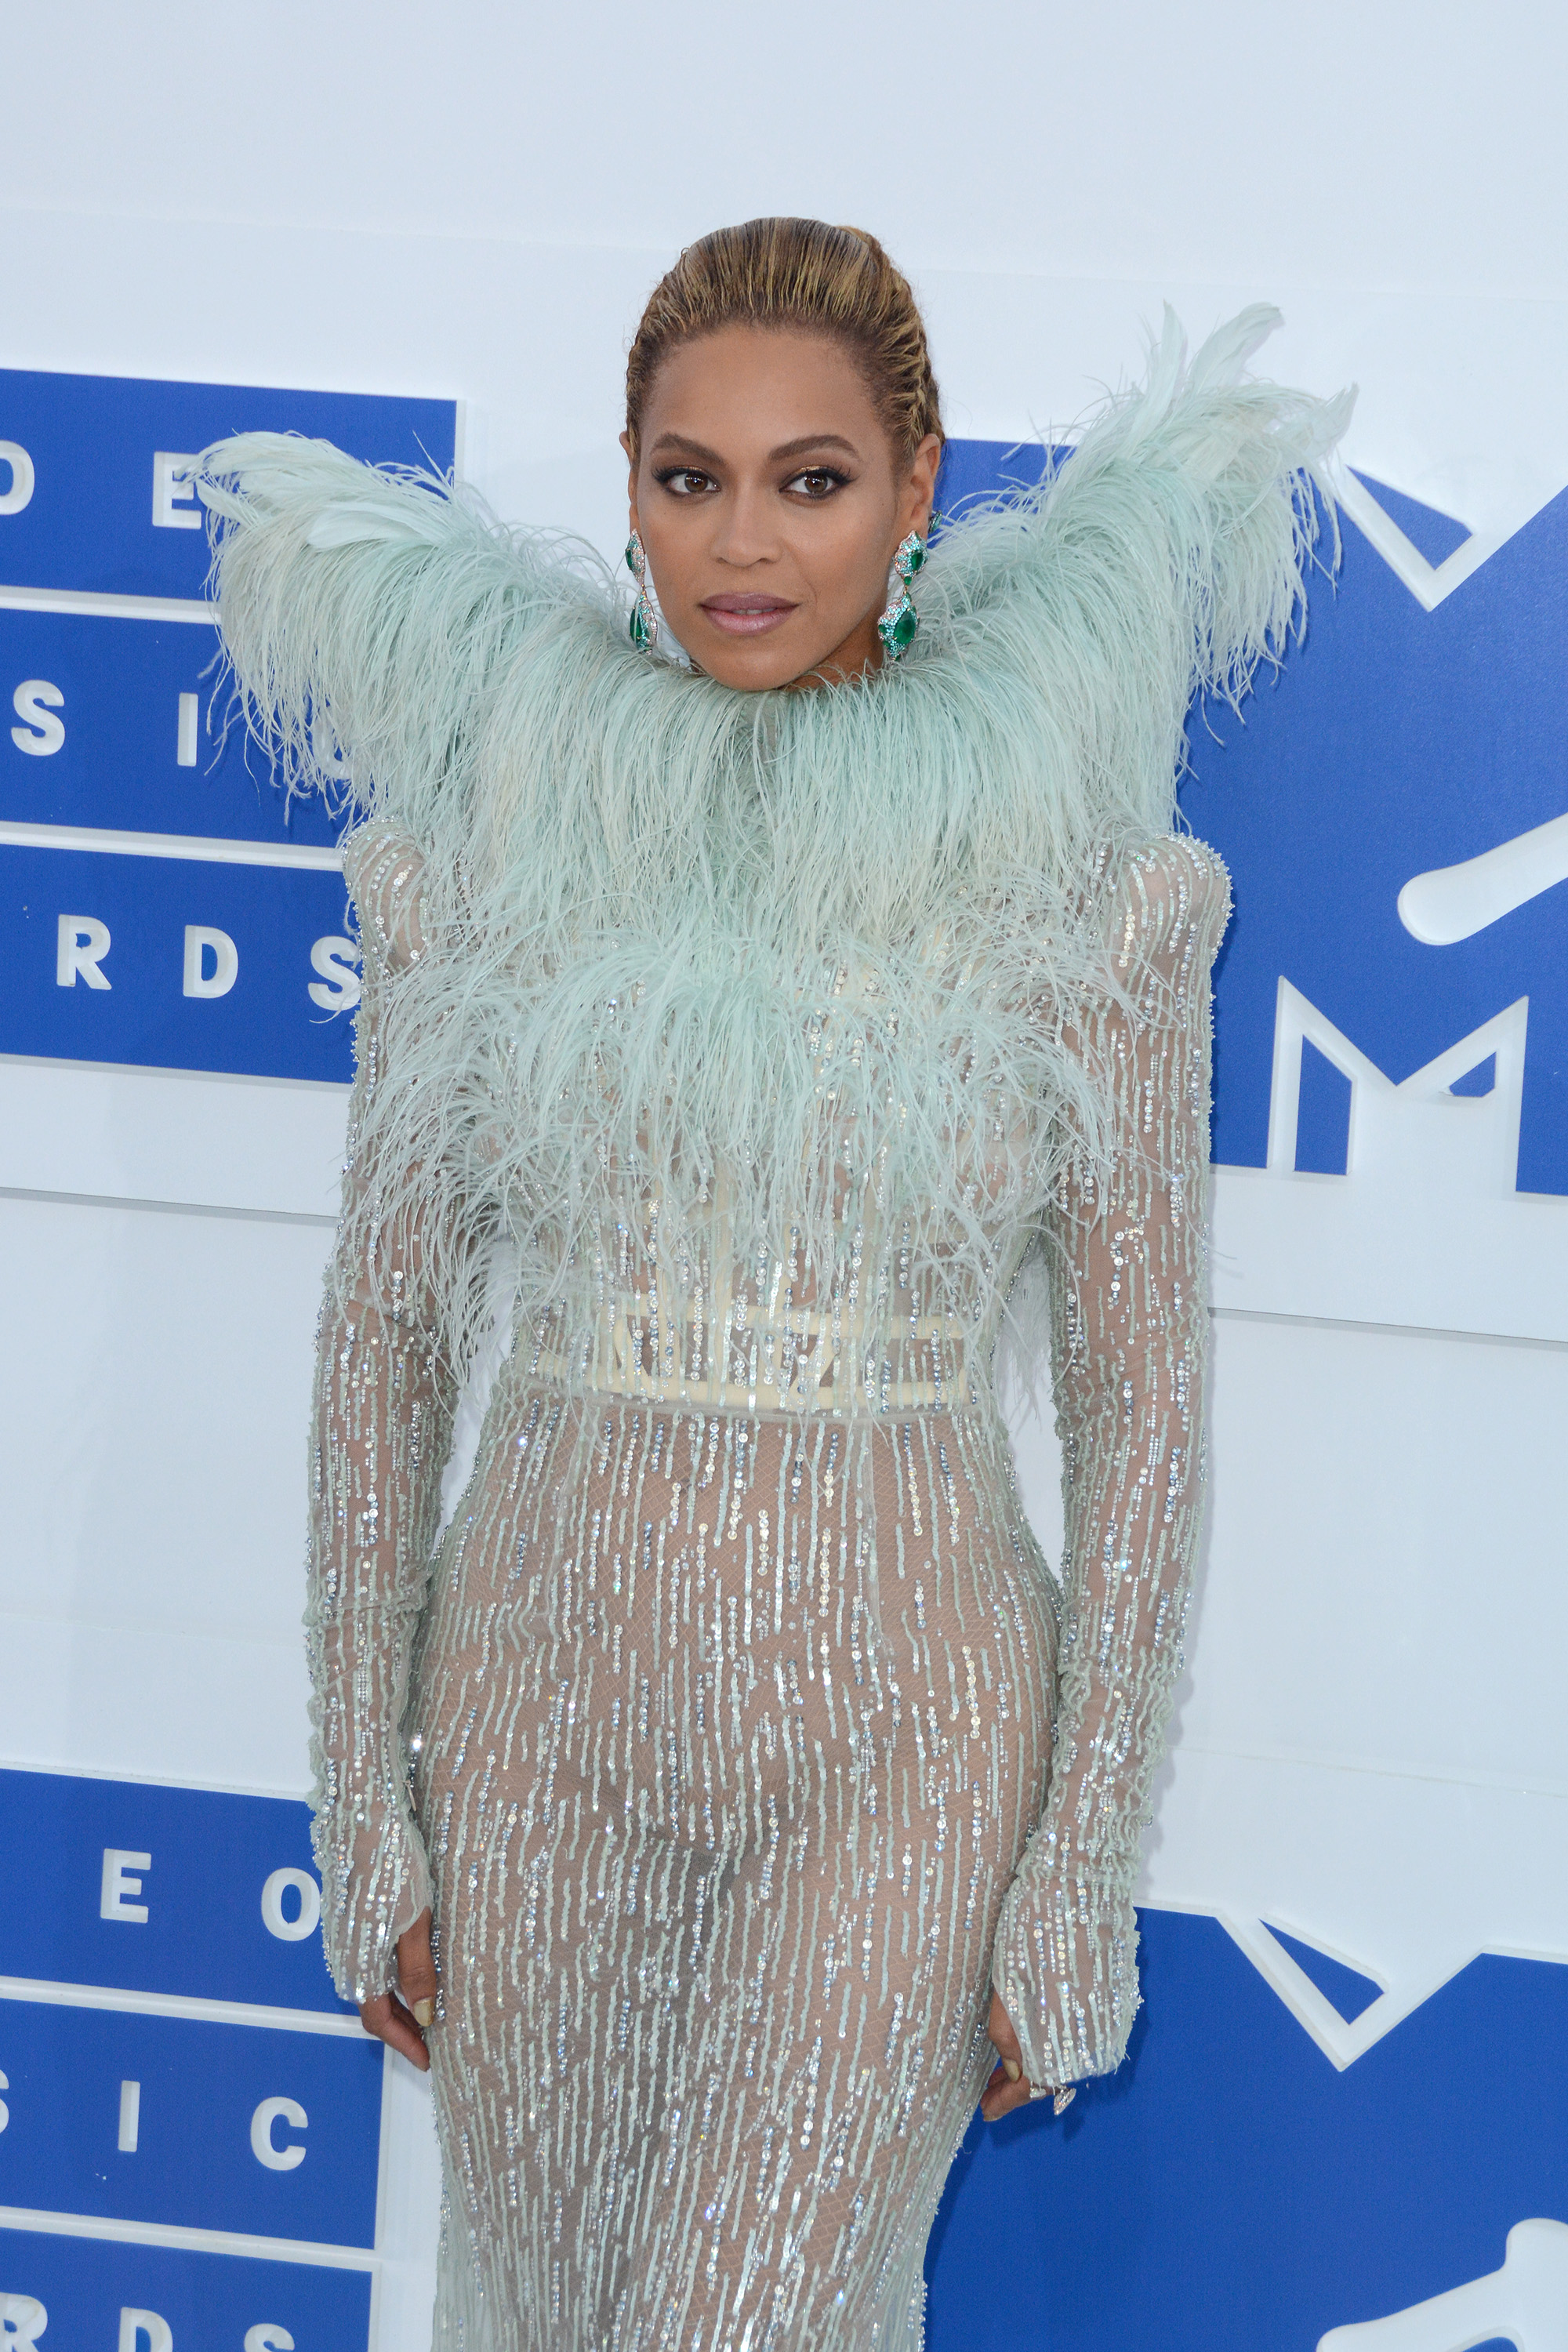 2016 MTV Video Music Awards - Red Carpet ArrivalsFeaturing: BeyonceWhere: New York, New York, United StatesWhen: 29 Aug 2016Credit: Ivan Nikolov/WENN.com